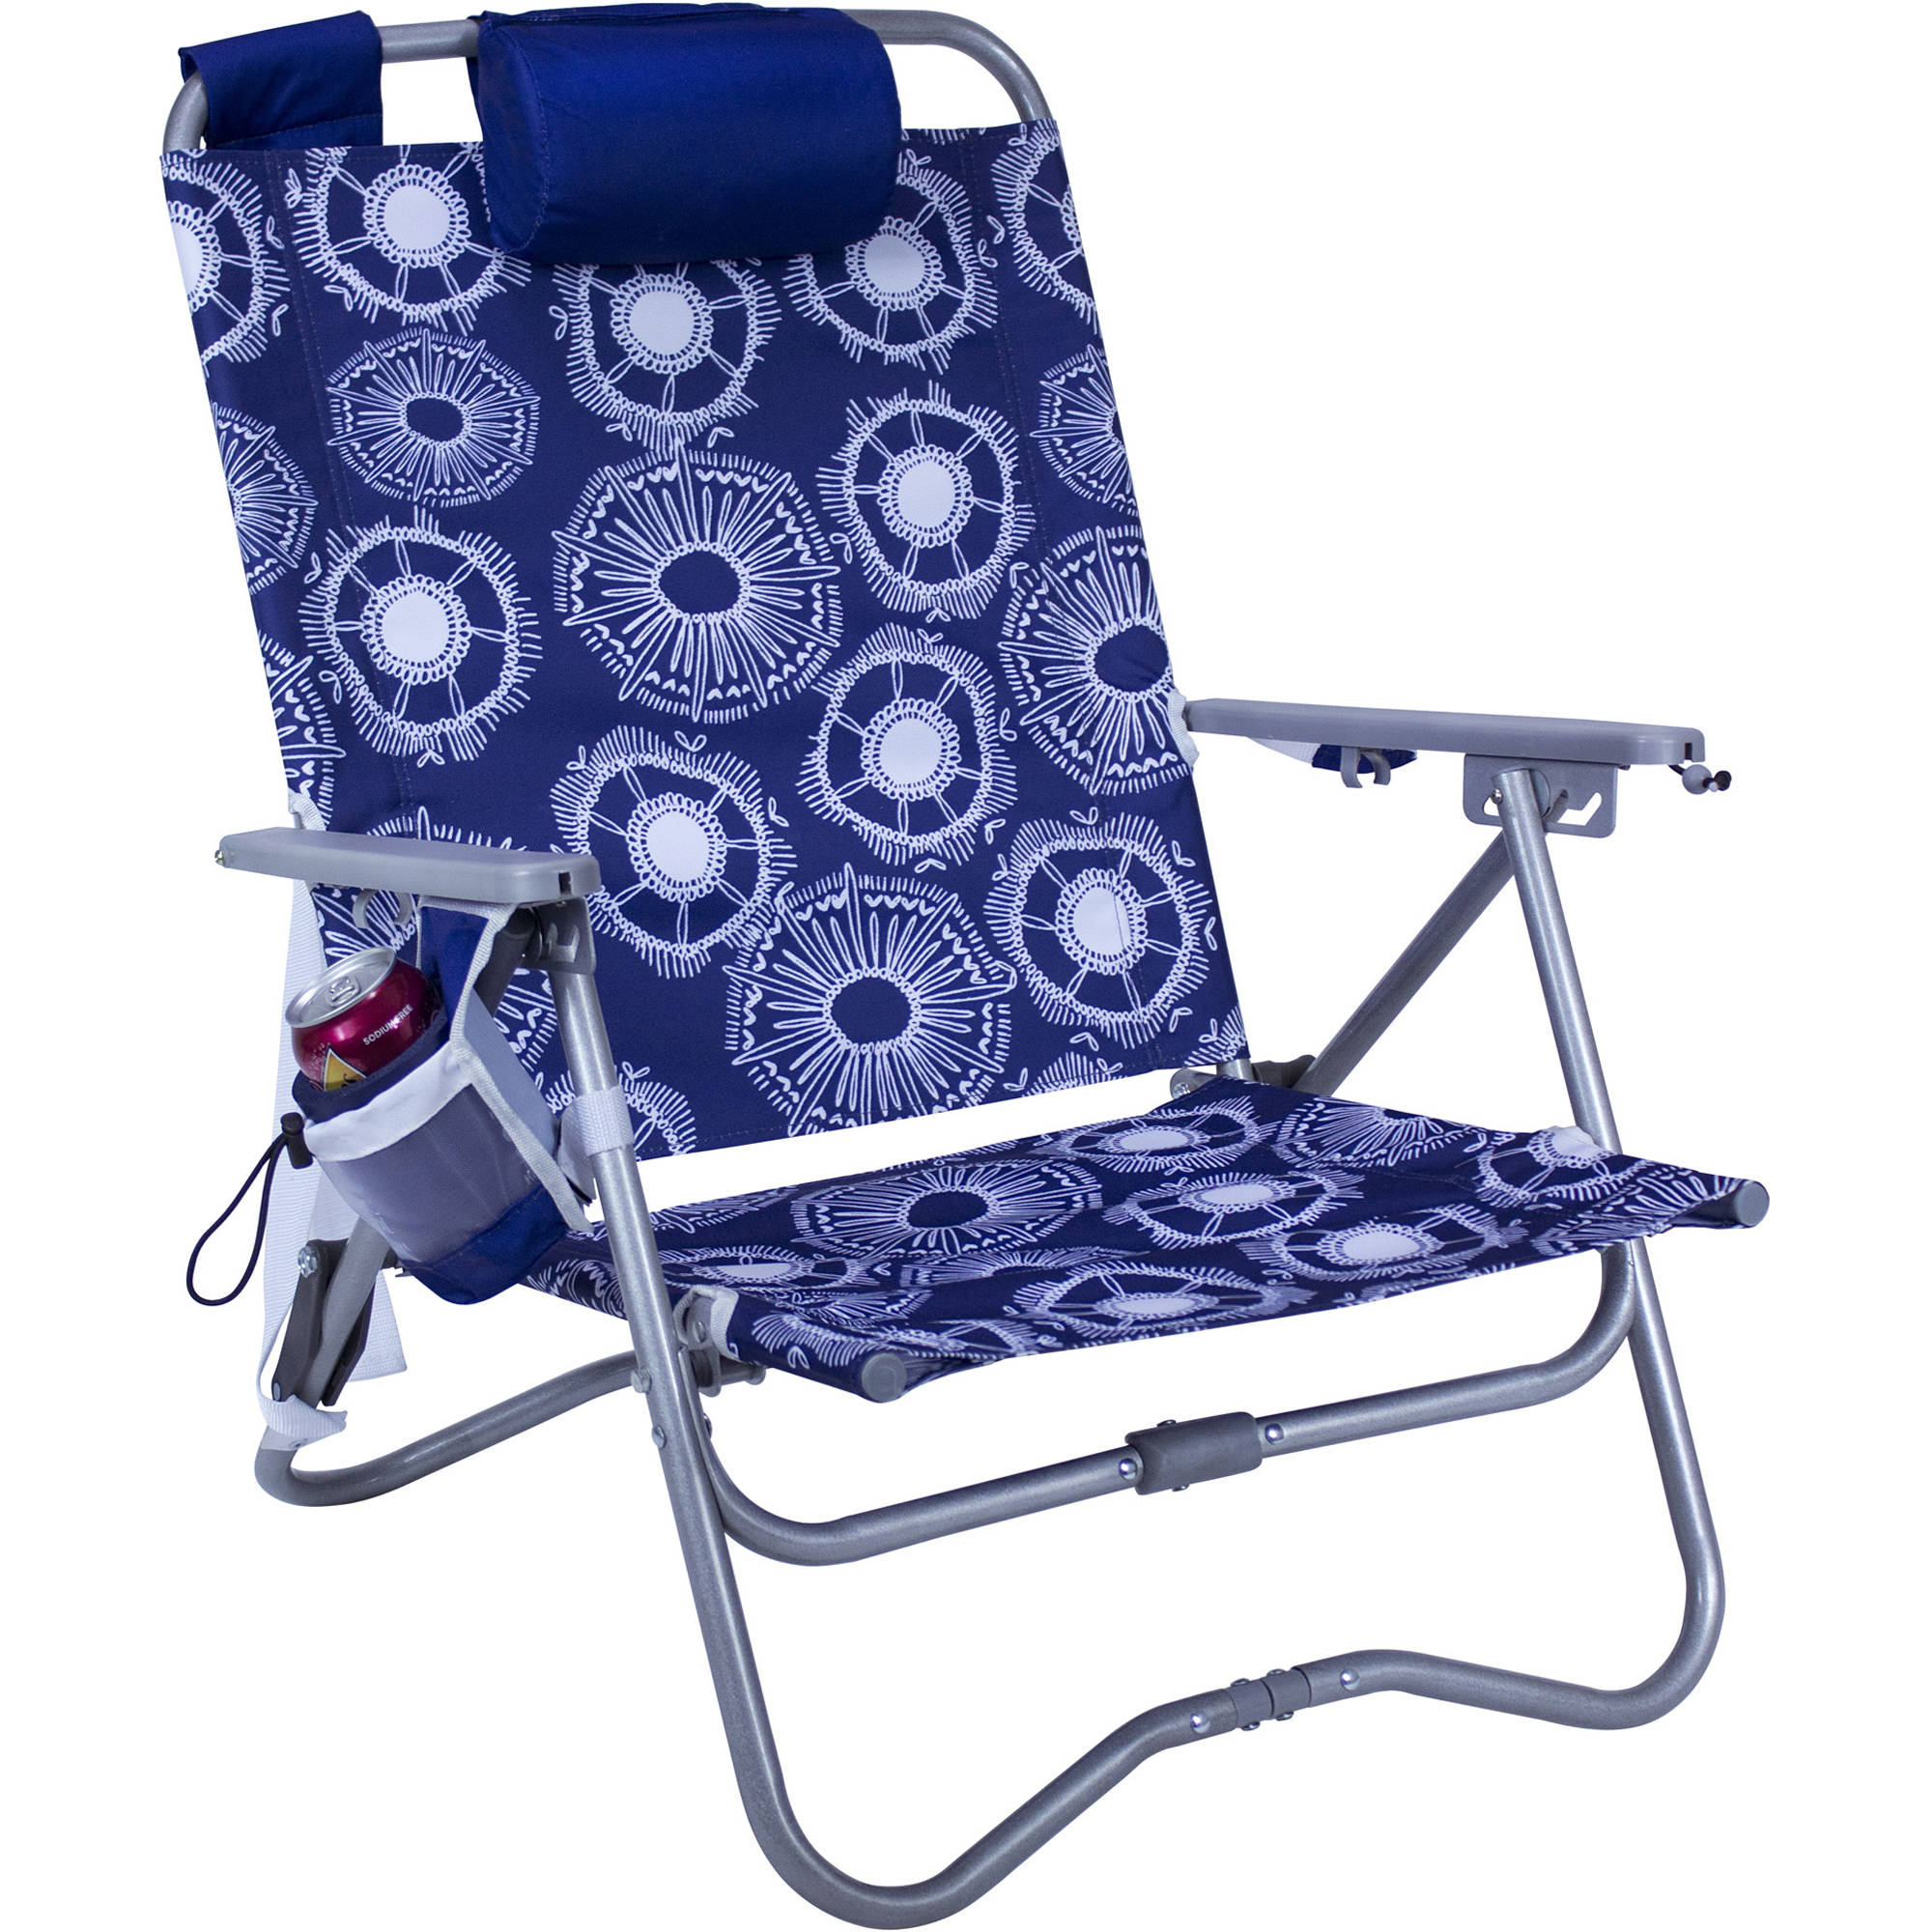 Brilliant Gci Outdoor Bi Fold Beach Chair St Bonsai Blue With Nautical Blue Accents Onthecornerstone Fun Painted Chair Ideas Images Onthecornerstoneorg